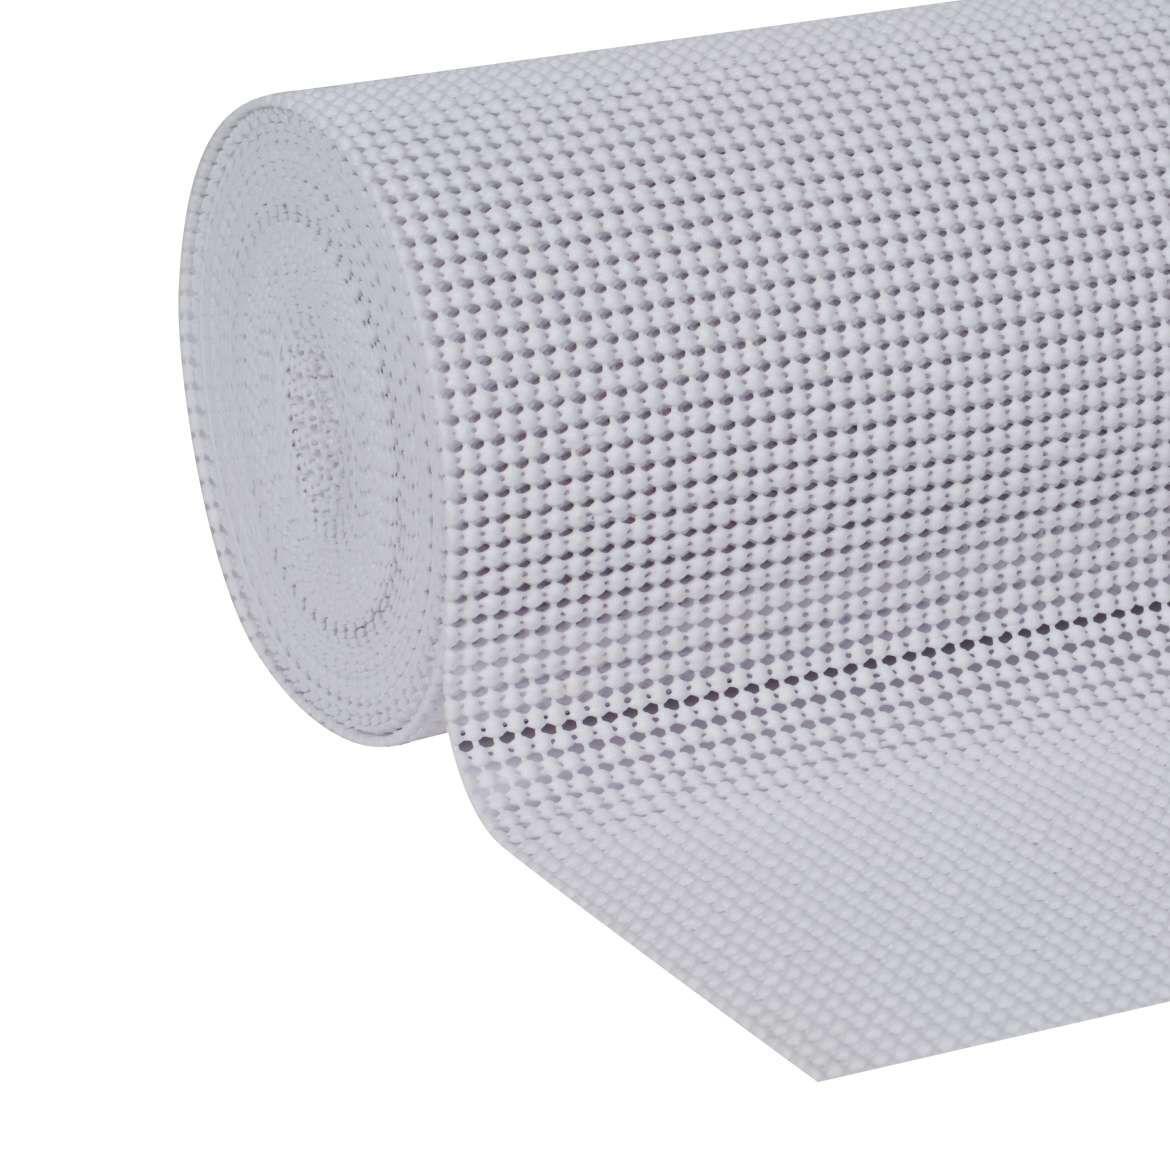 Kitchen Drawer Liners Walmart: Select Grip EasyLiner Shelf Liner 20in X 24 T